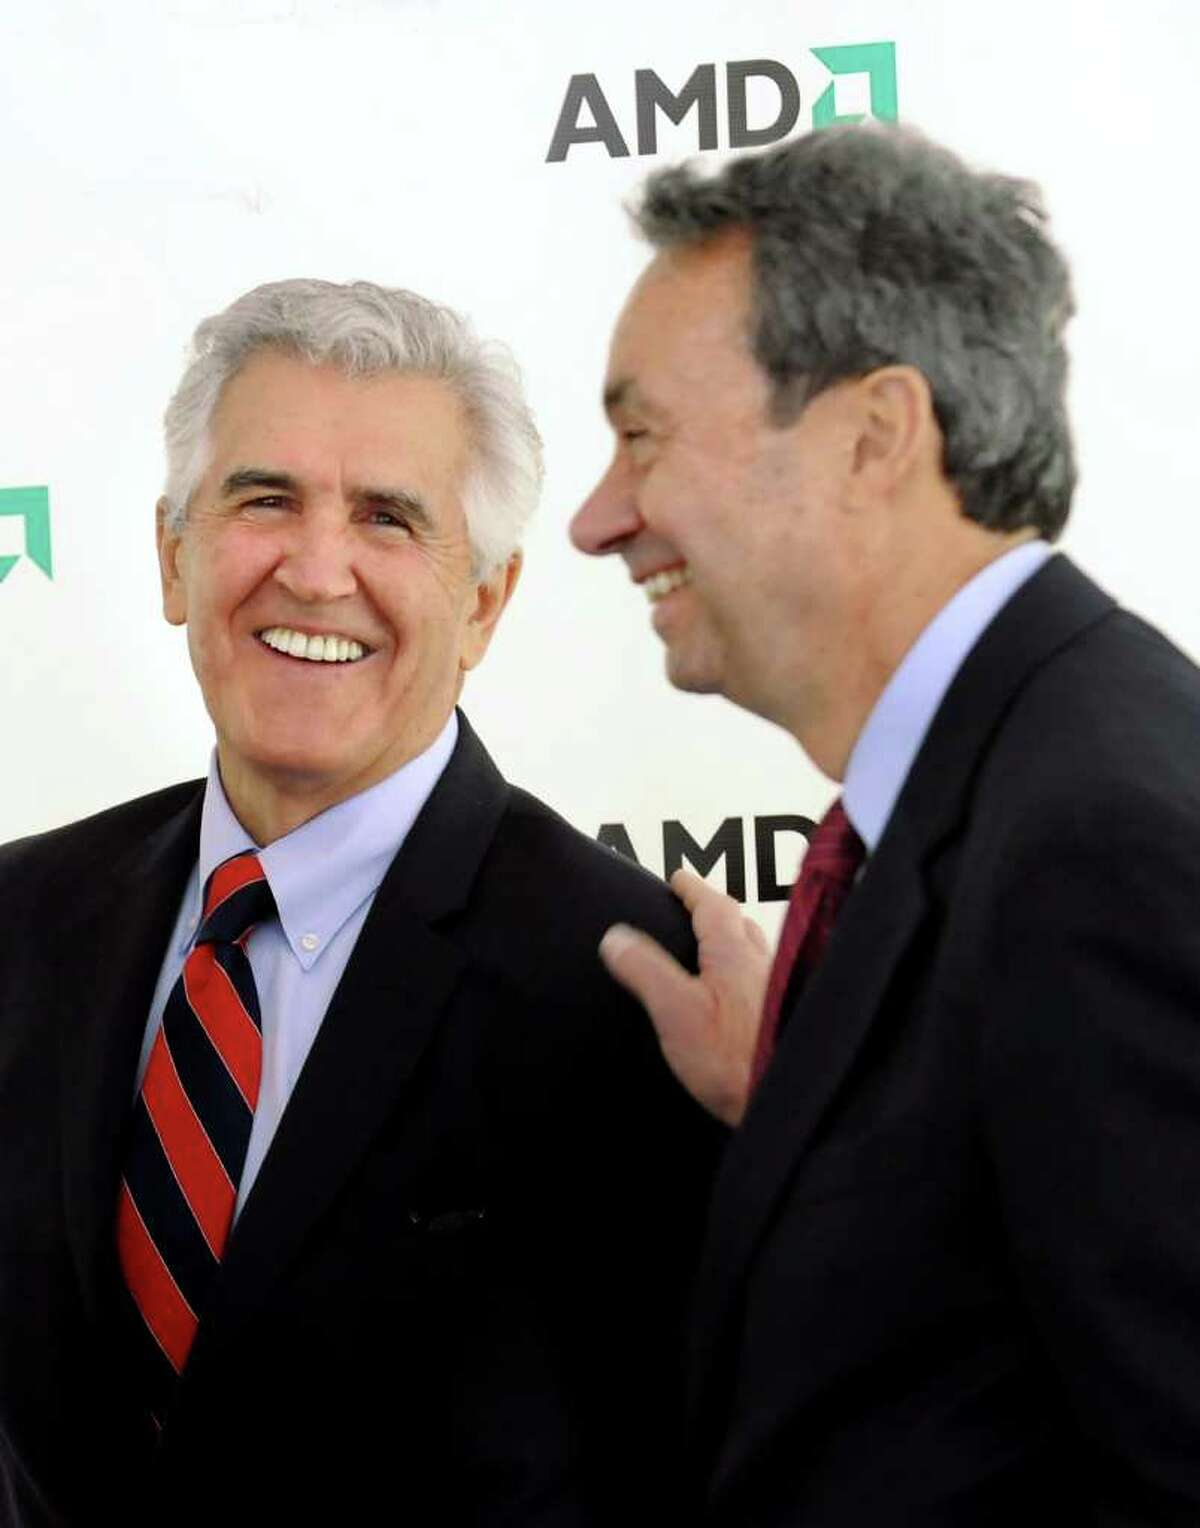 CINDY SCHULTZ/TIMES UNION -- Former Sen. Joseph Bruno, left, and Assembly Majority Leader Ron Cannestrari, right, share a light moment during the announcement of AMD plans on Wednesday, Oct. 8, 2008, at the Luther Forest Technology Campus in Malta, N.Y. (WITH RULISON STORY)